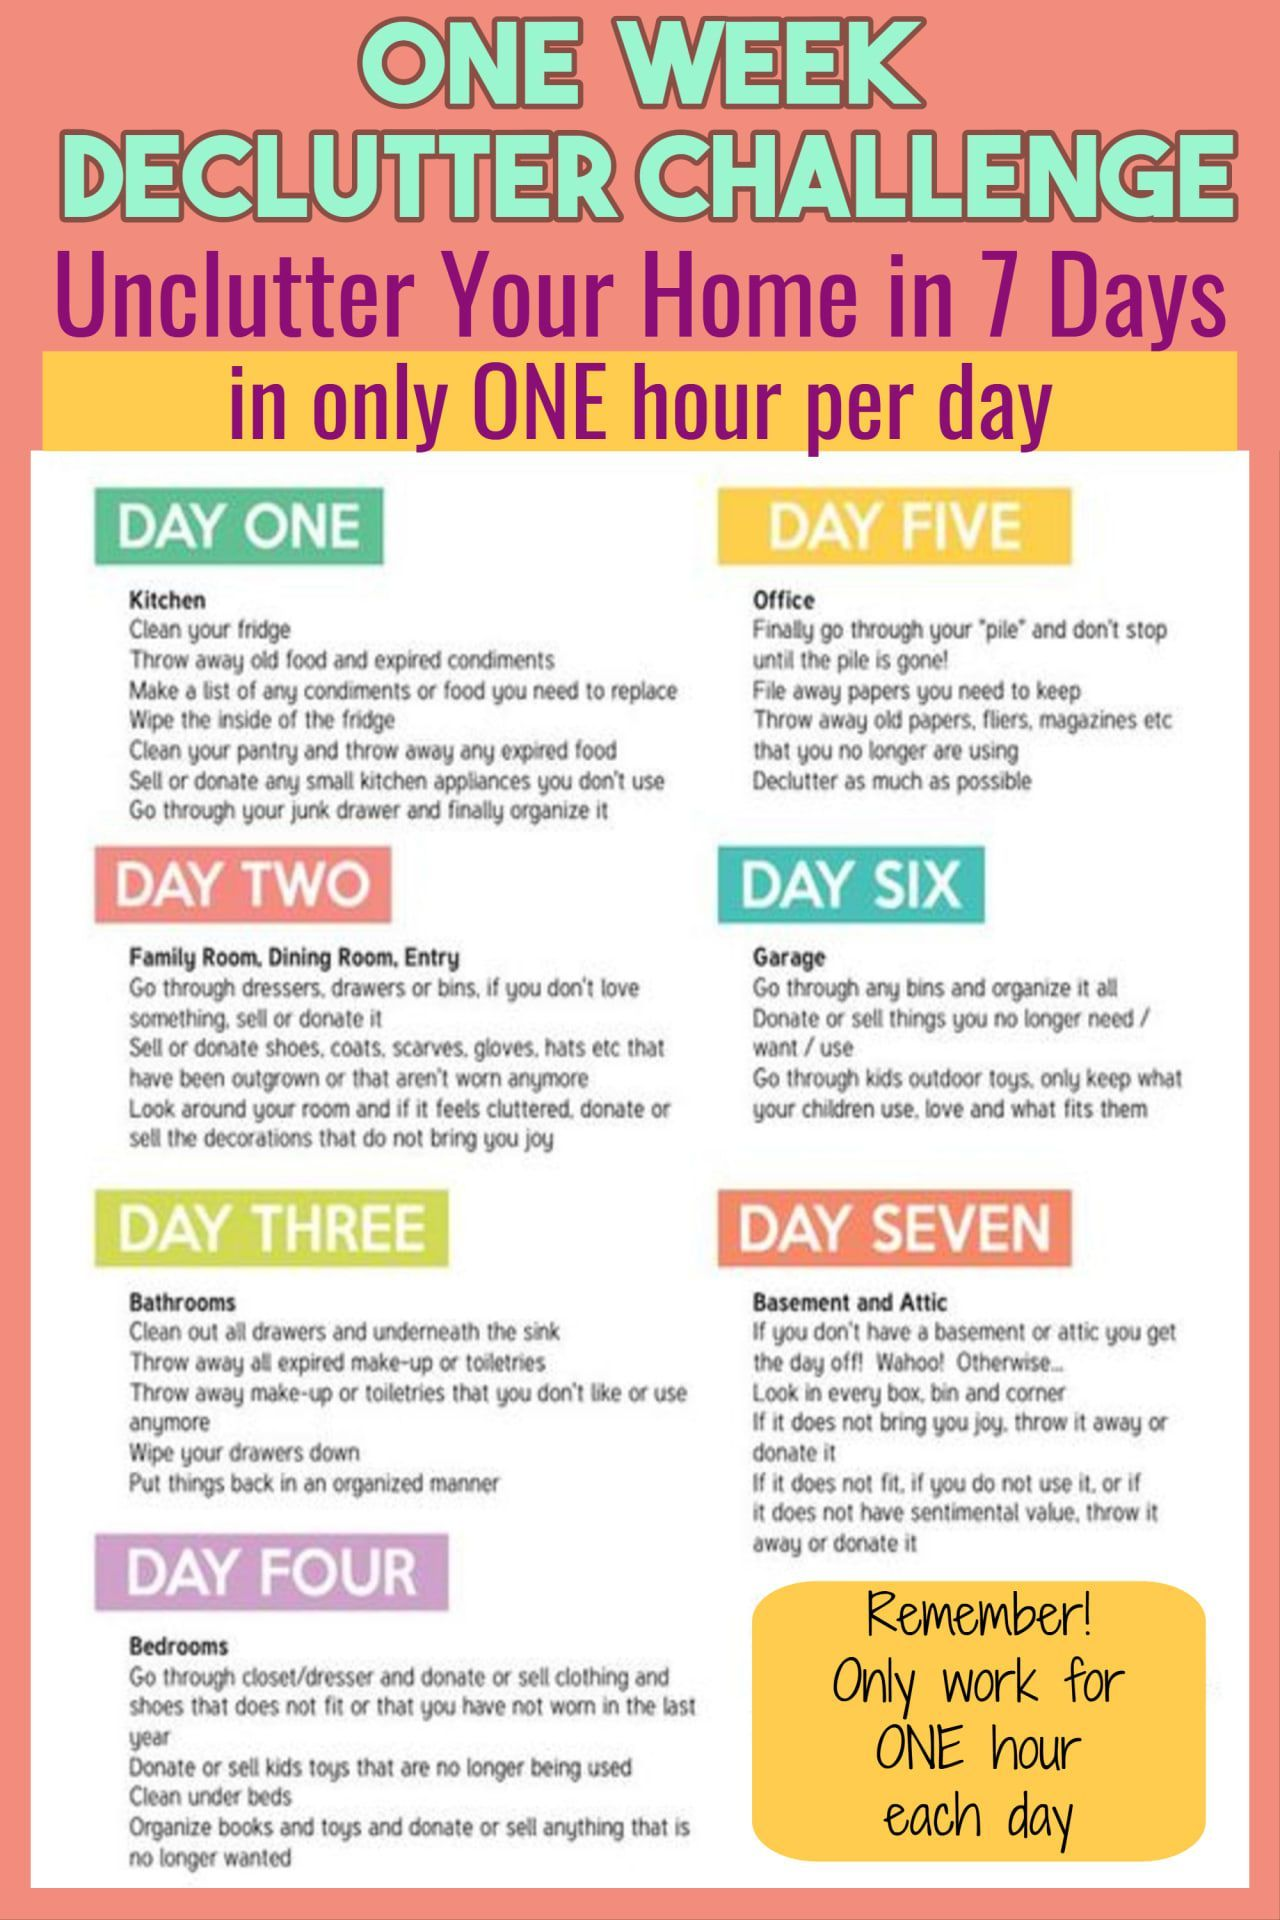 Declutter Your Home Challenge: 40 Bags in 40 Days - Does This Decluttering Challenge WORK? - Decluttering Your Life - maaghie